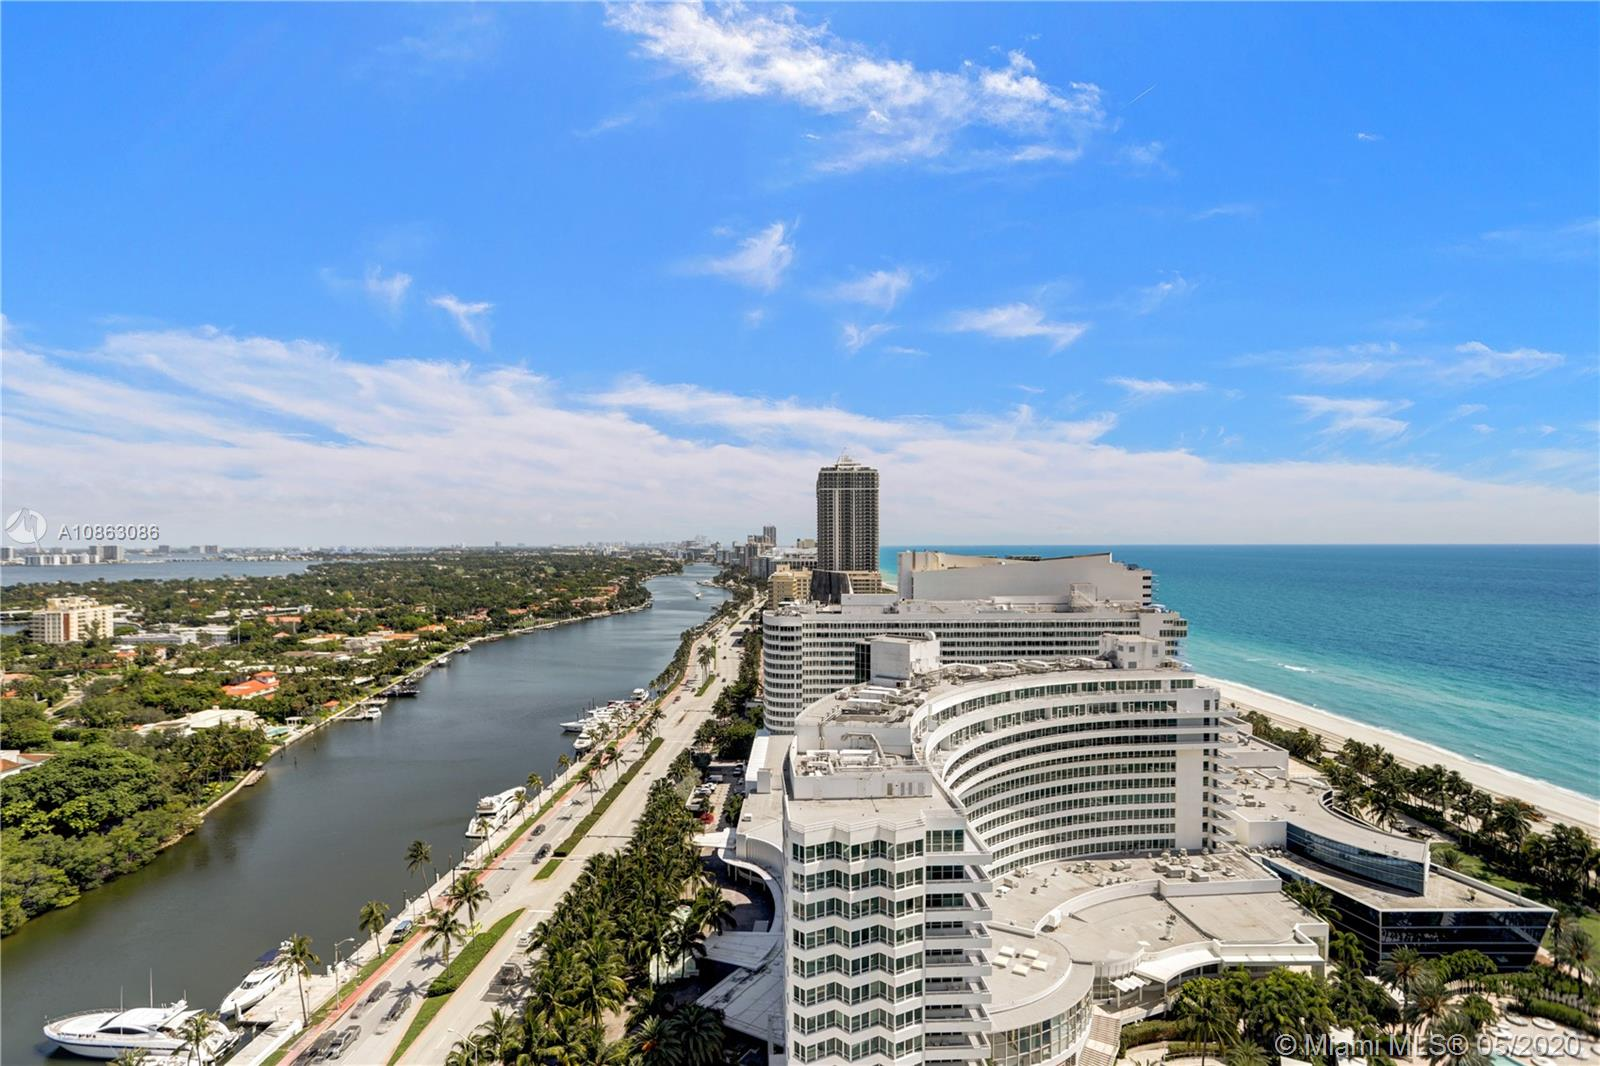 Beautiful Jr Suite w/ocean & bay views at The Fontainebleau II. Enjoy full service, vacation-style living in a furnished turnkey unit with king bed, sleeper sofa & more. Enroll in hotel rental program & receive income while away! The Fontainebleau Resort offers luxury amenities on 22 oceanfront acres including award-winning restaurants, LIV night club, Lapis spa & state-of-the-art fitness center. Maintenance includes: AC, local calls, electricity, valet + daily free breakfast in the owners lounge.